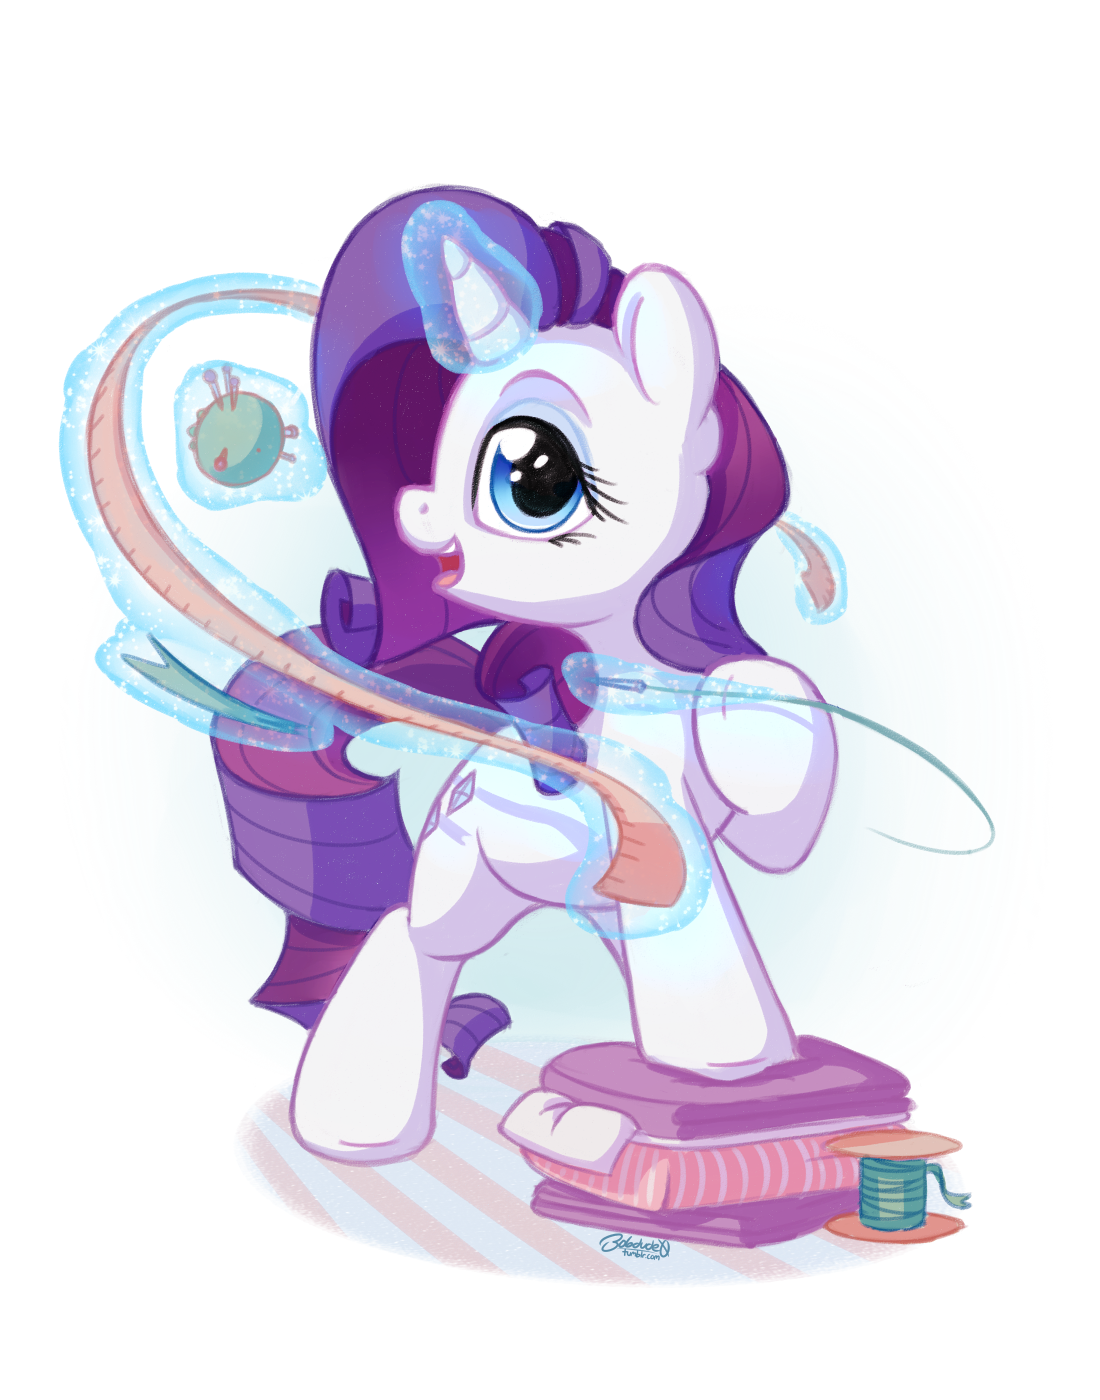 1406106__safe_artist-colon-bobdude0_rarity_cute_female_glowing+horn_looking+at+you_magic_mare_measuring+tape_open+mouth_pincushion_pony_raised+hoof_rar[1]